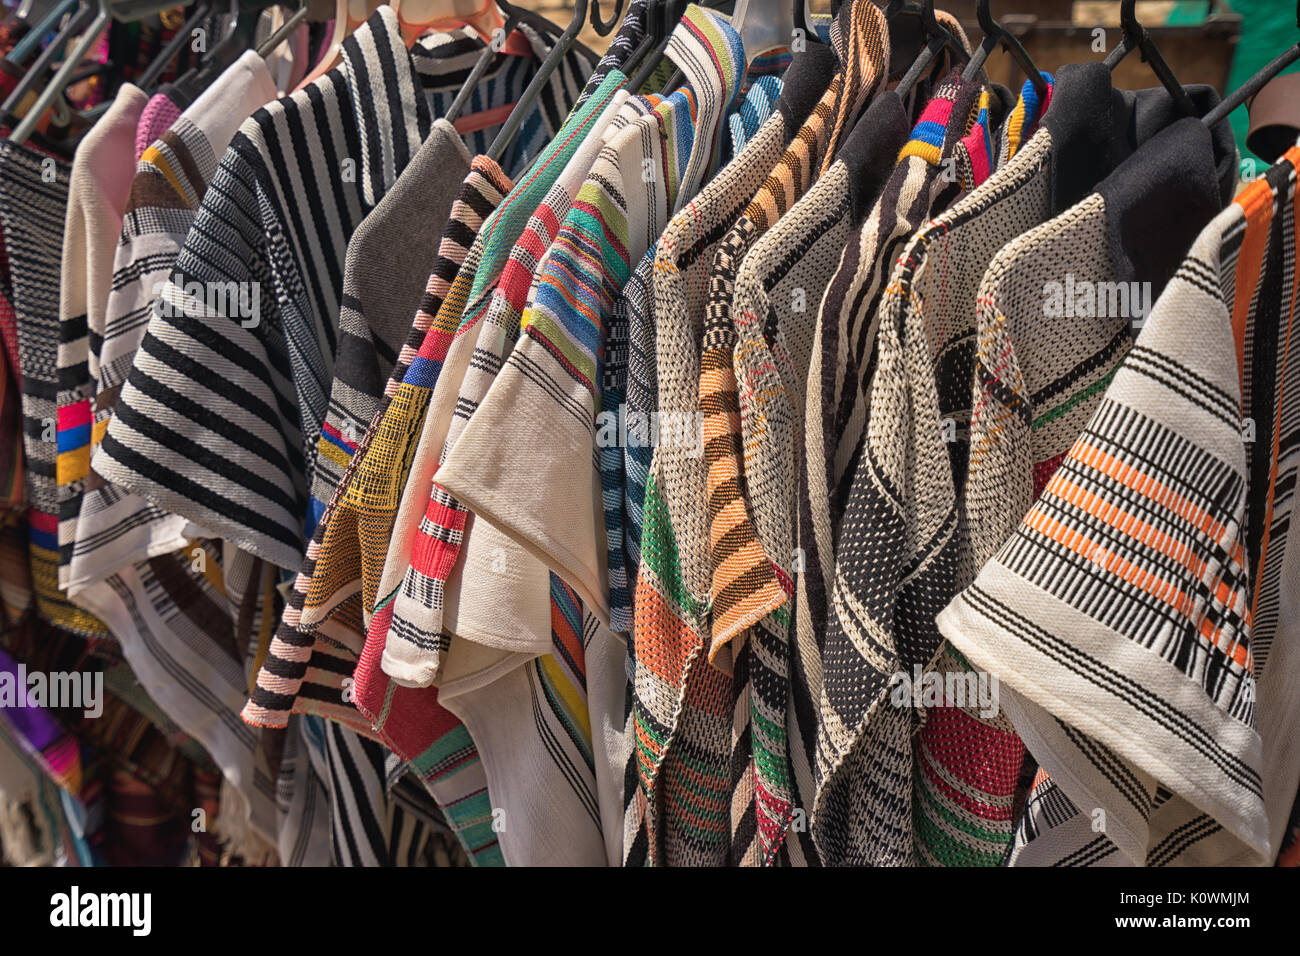 mens ponchos in Colombia - Stock Image